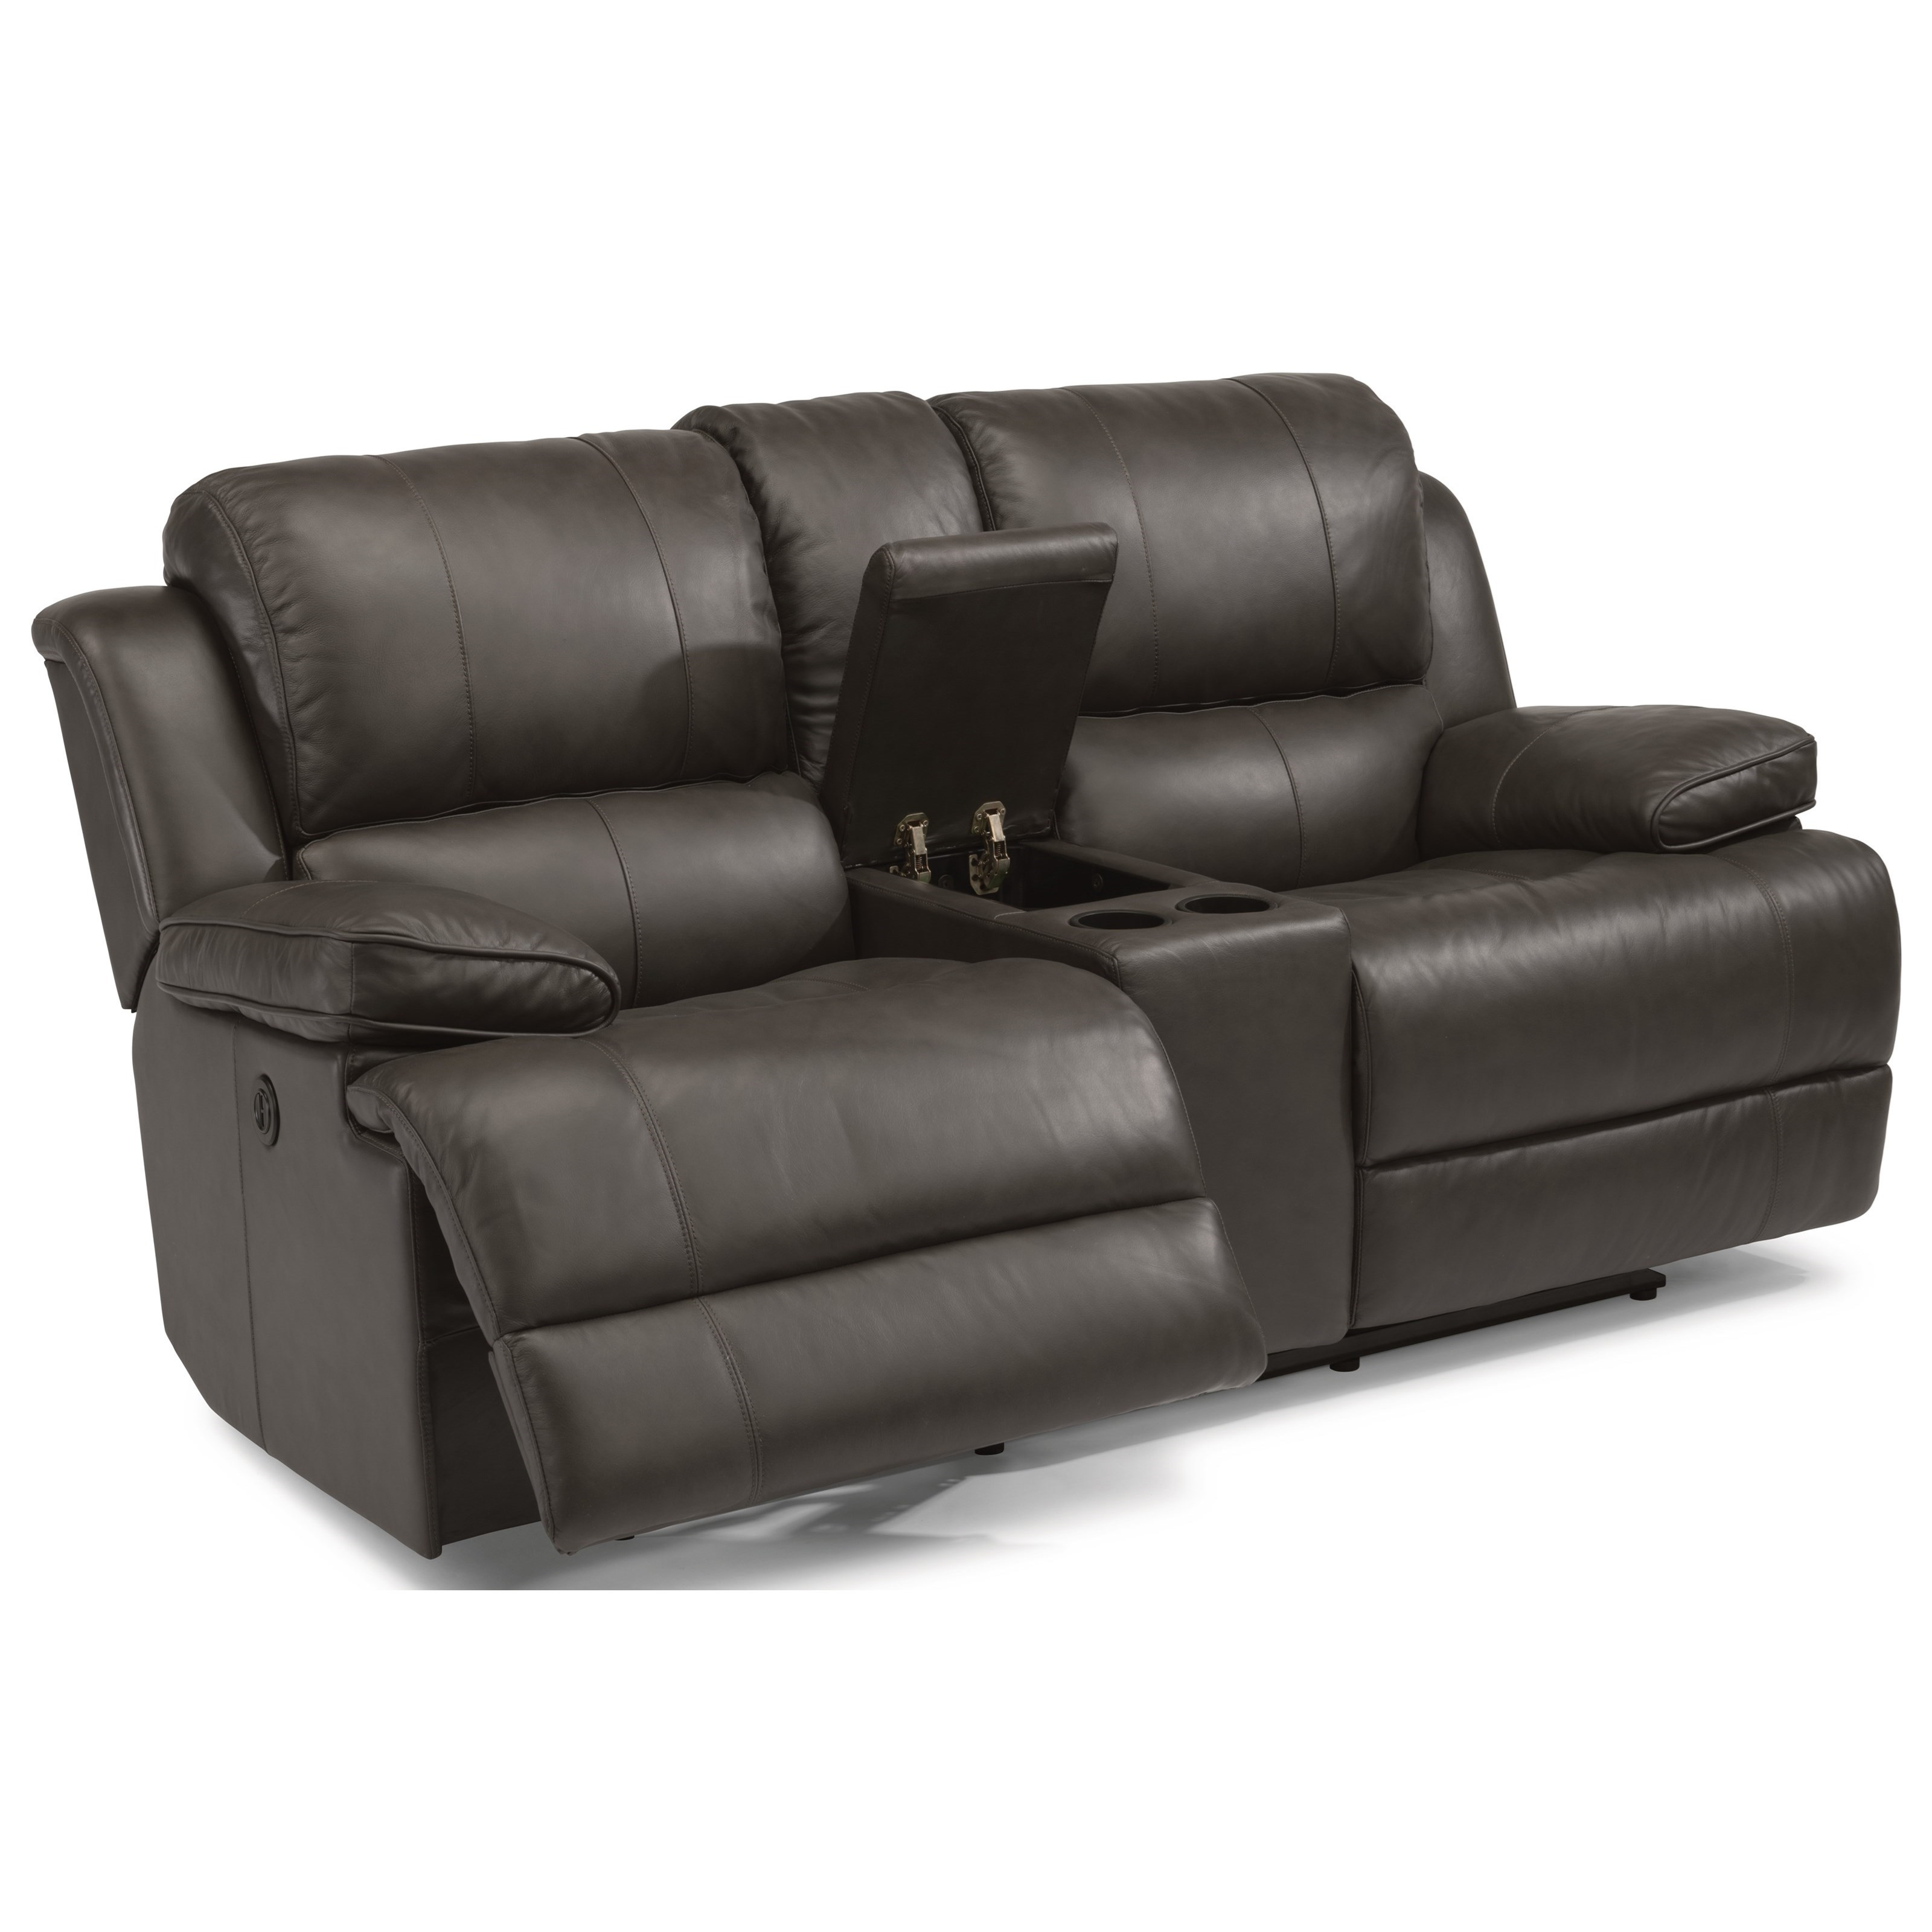 Flexsteel Latitudes-Simon Power Reclining Loveseat with Console - Item Number: 1831-604P-453-70